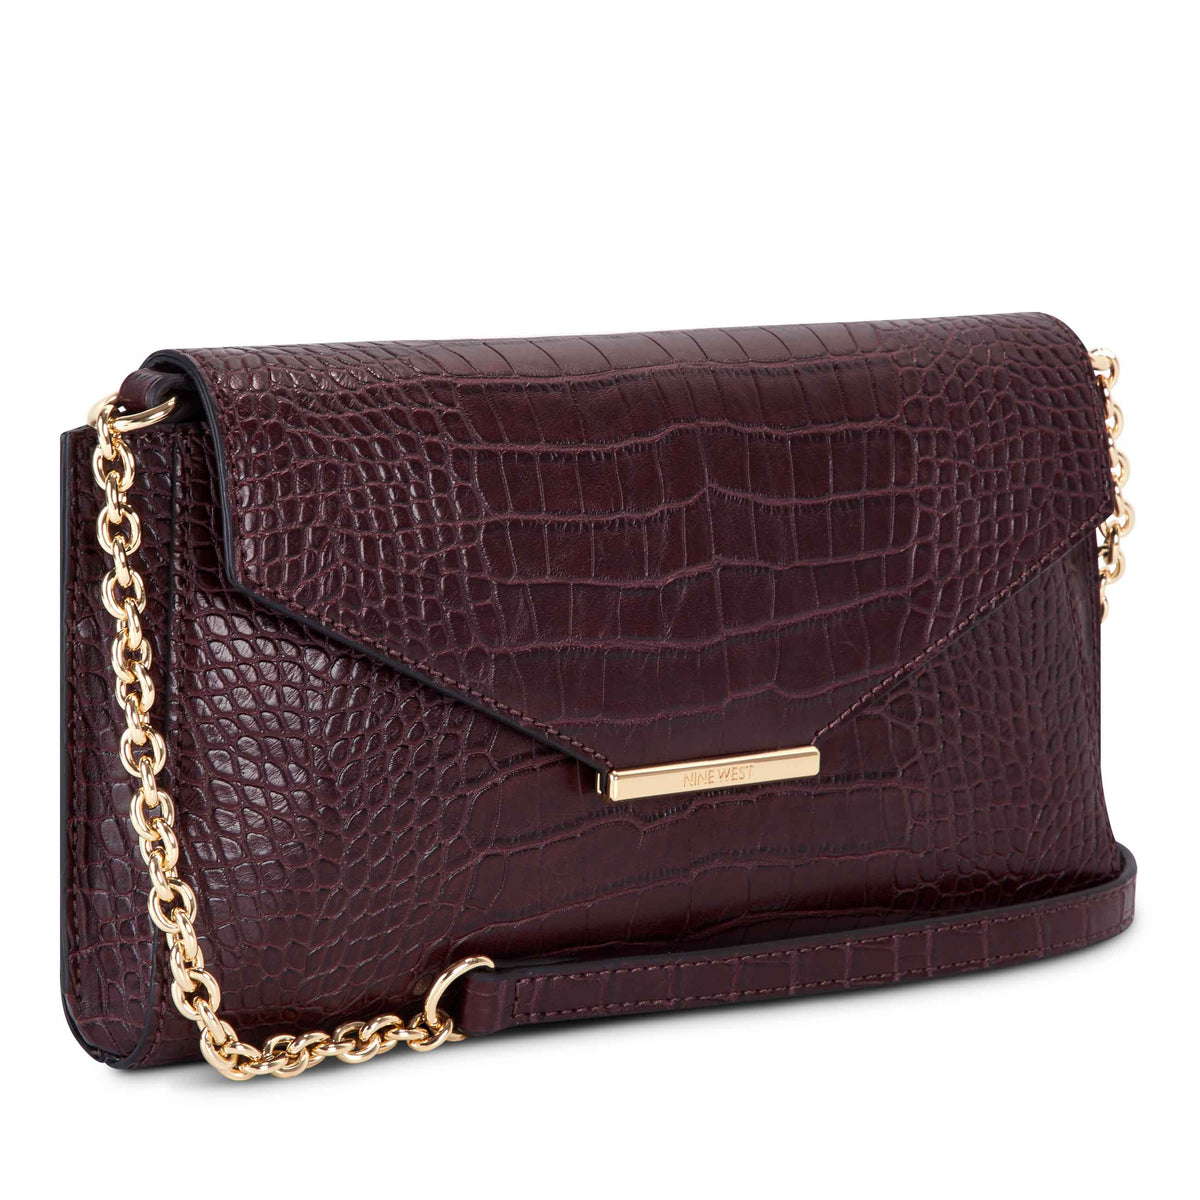 aspyn-flap-clutch-in-bordeux